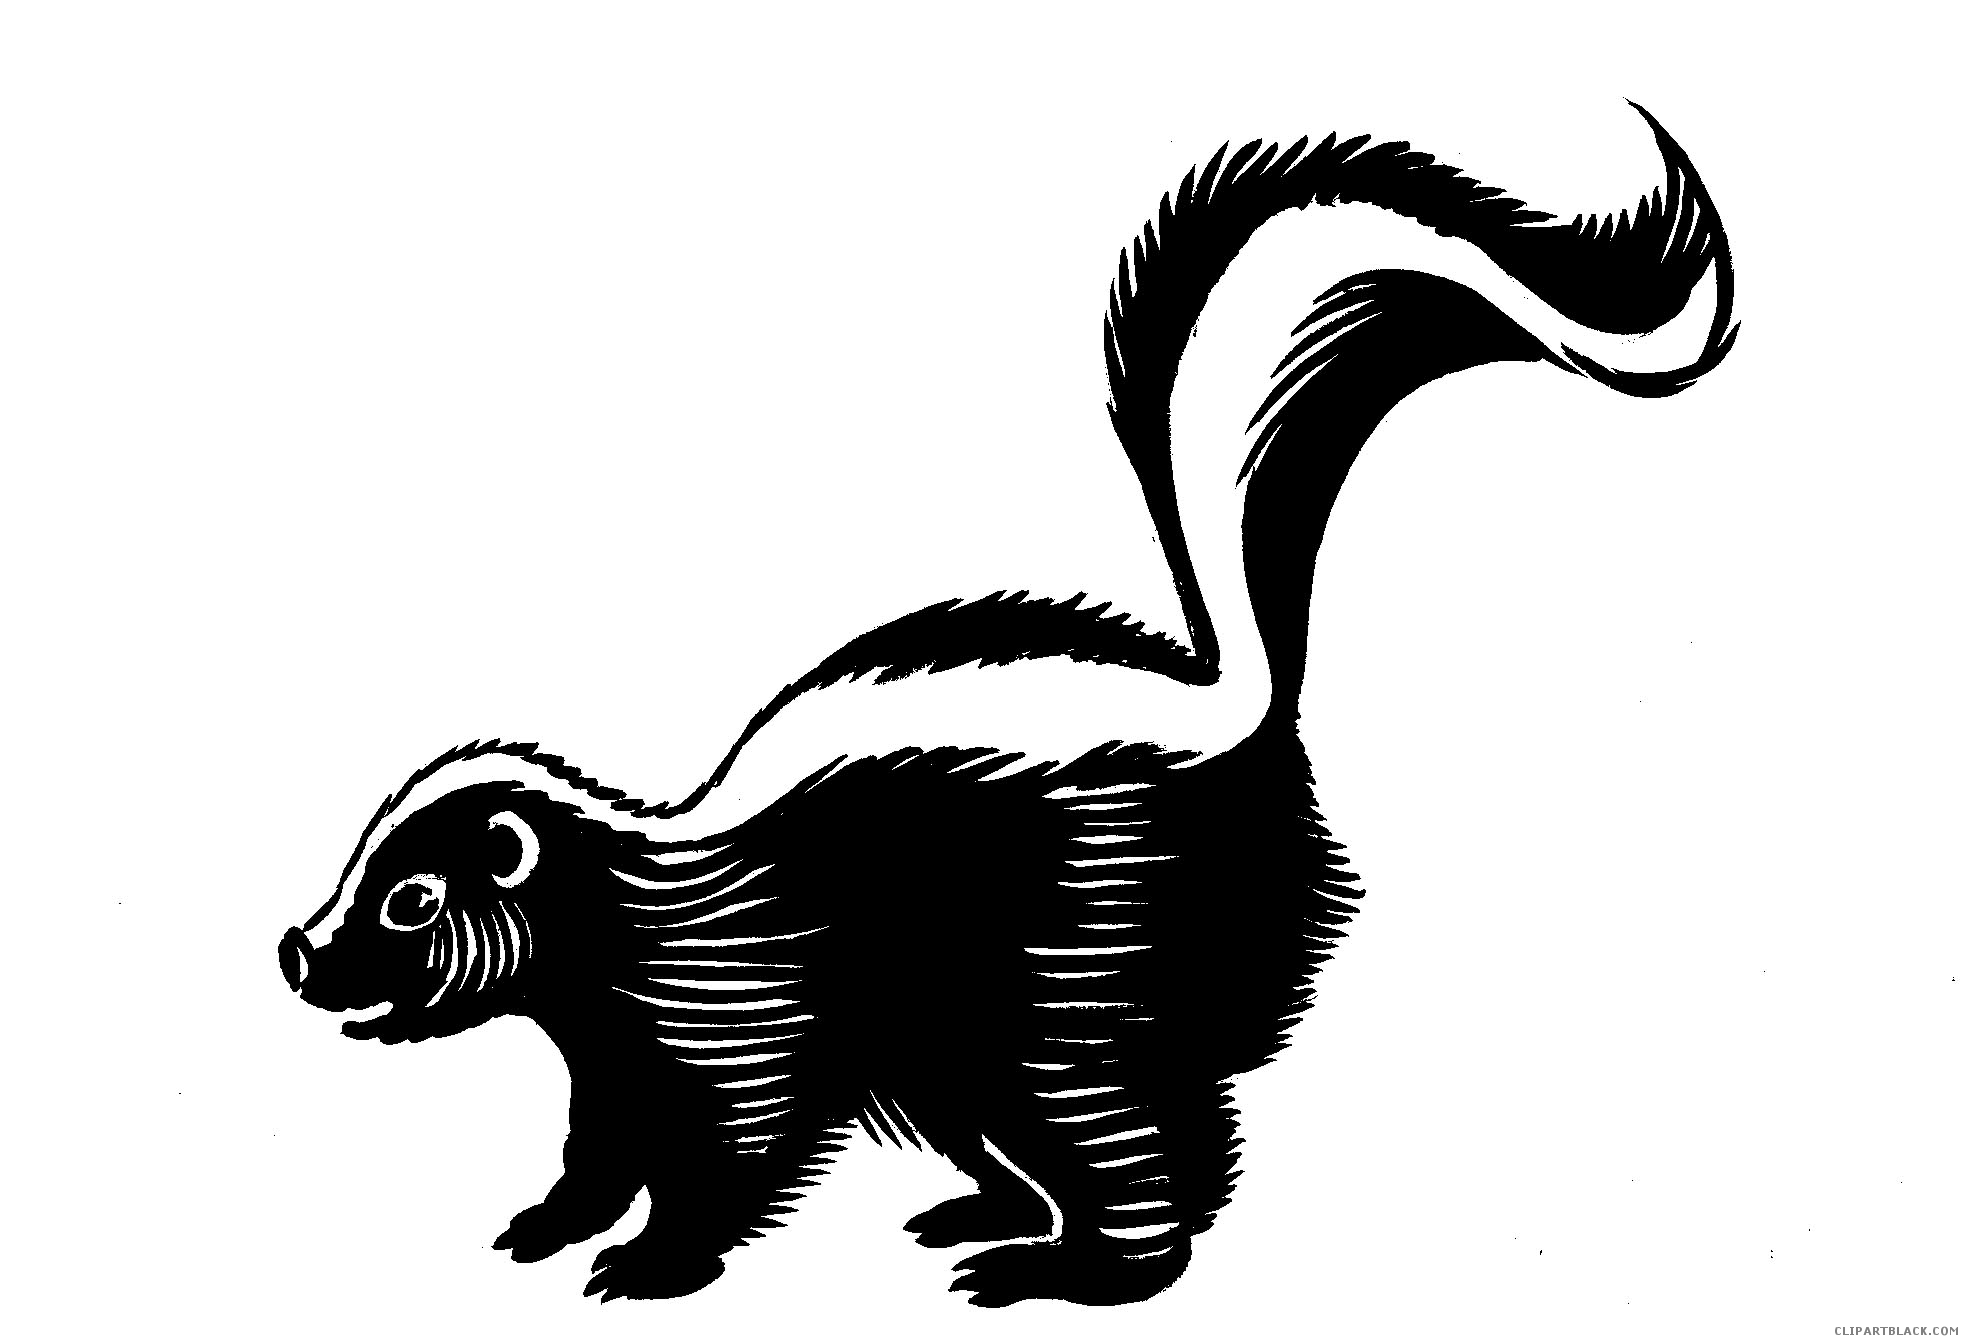 Black and white skunk clipart image download Skunk clipart black and white 4 » Clipart Station image download